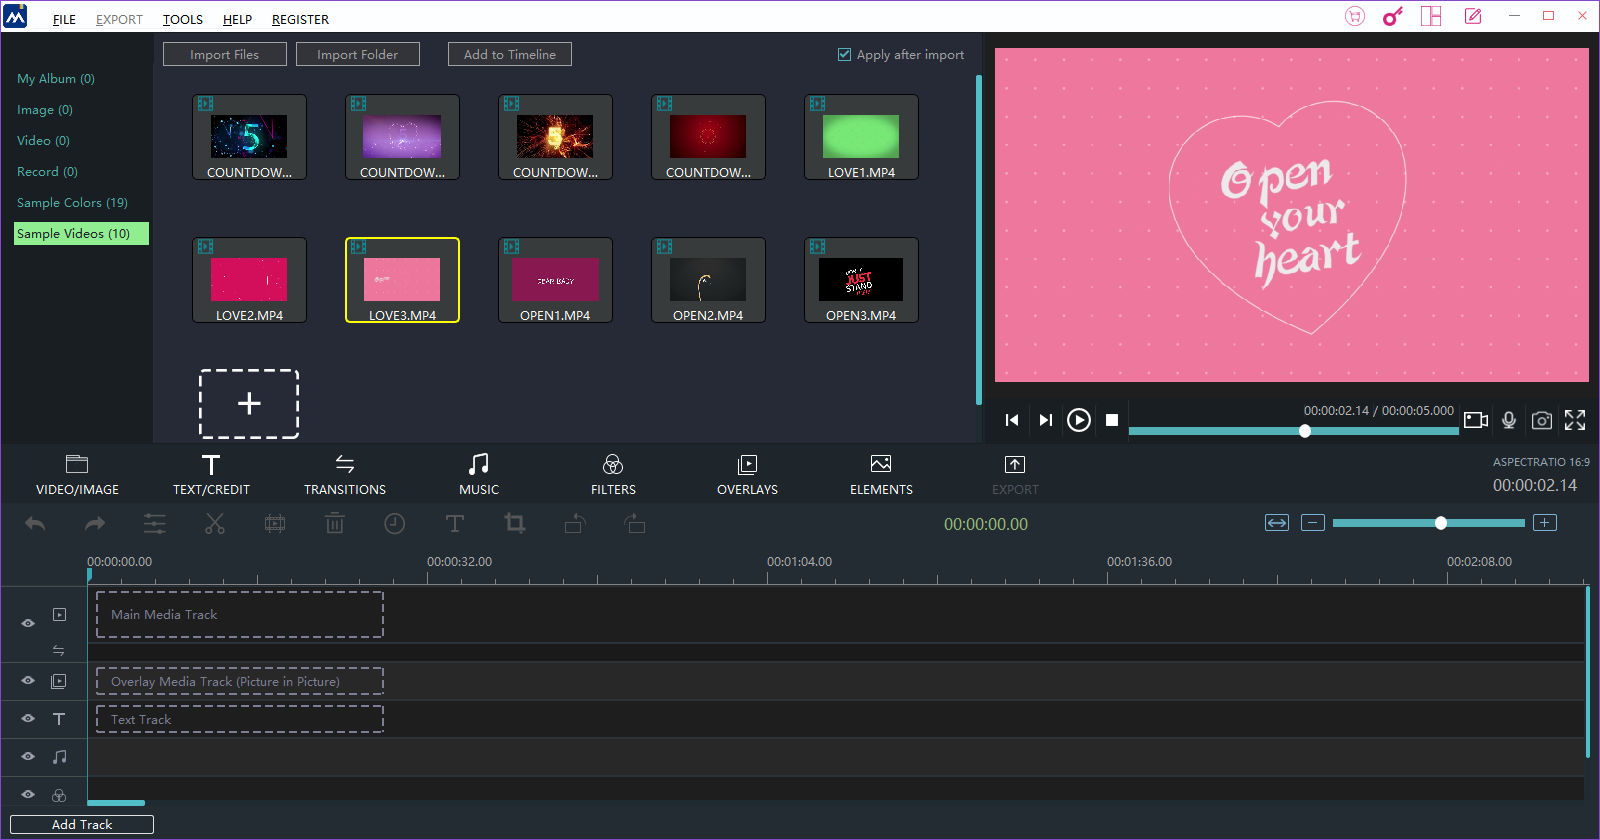 TopWin-Movie-maker.com Updates Their Website with Latest News About Windows Movie Maker 2021 1